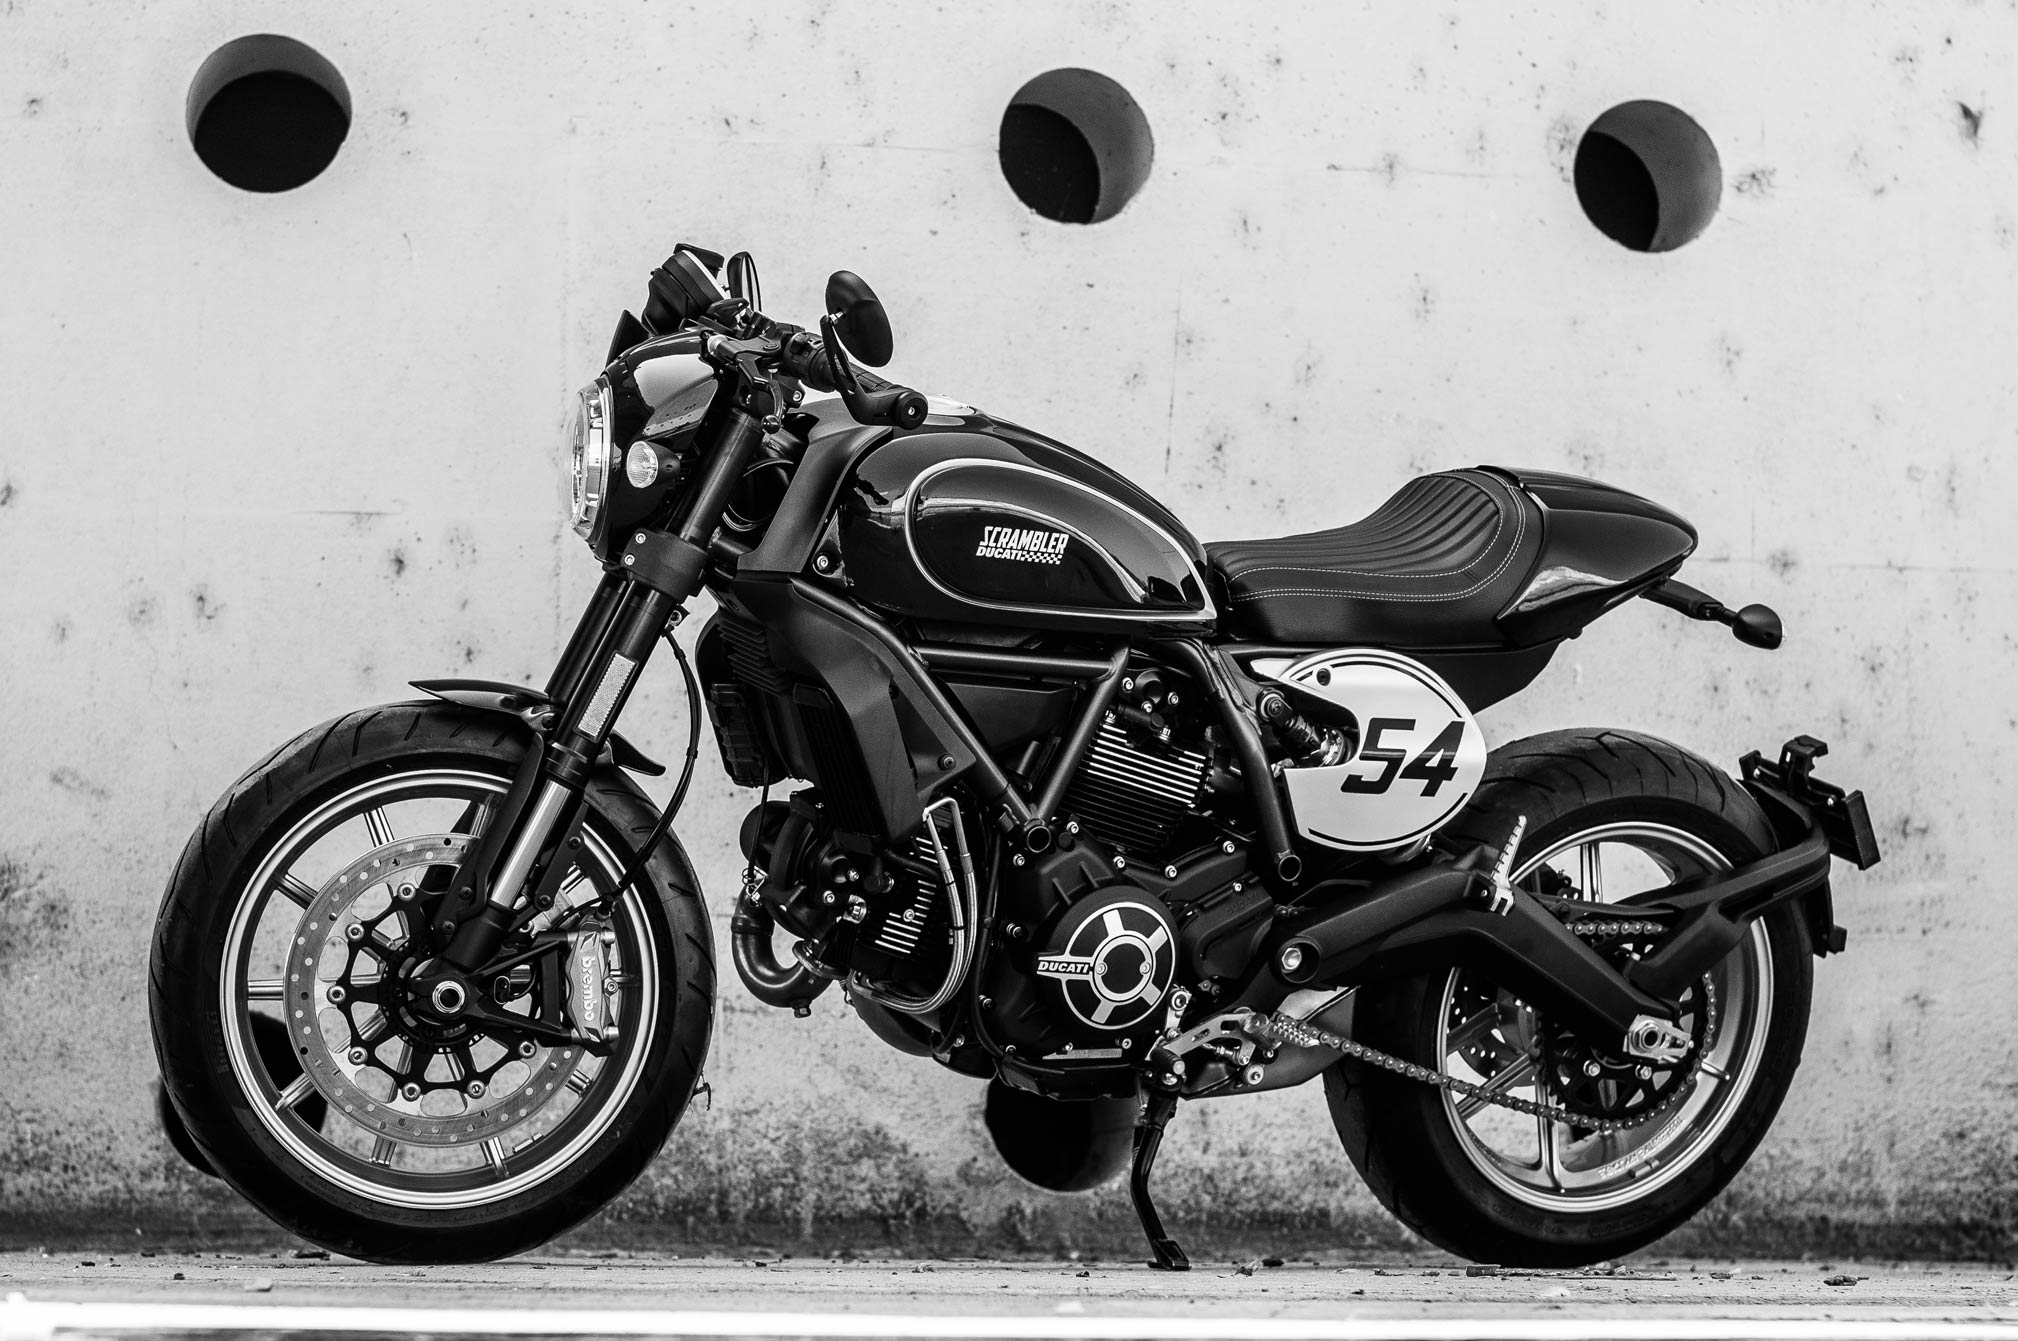 2018 Ducati Scrambler Cafe Racer Review Totalmotorcycle